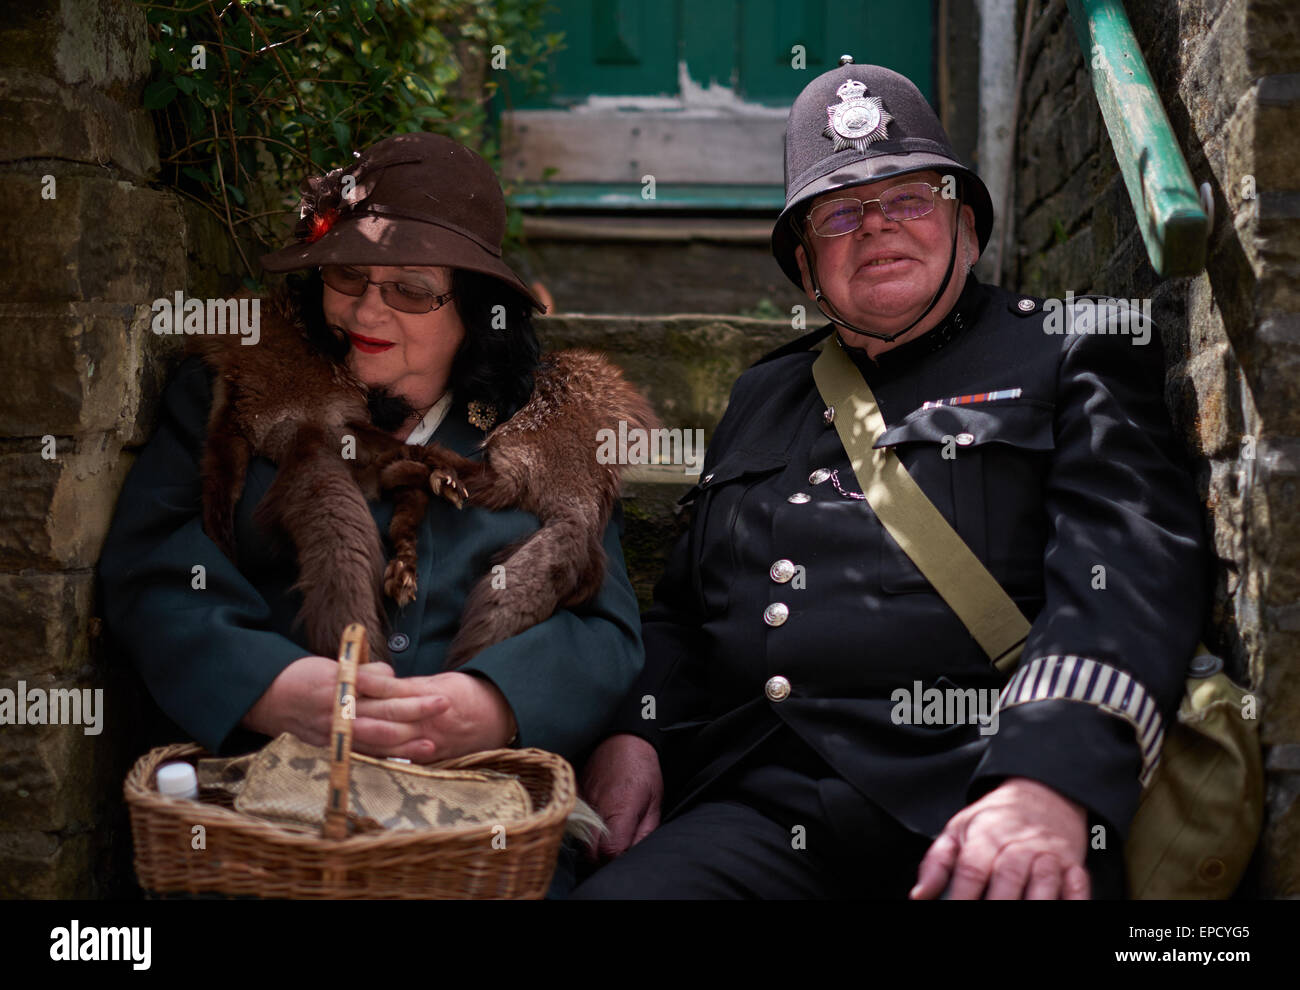 Jolly old policeman and wife sitting in a stairwell - Stock Image